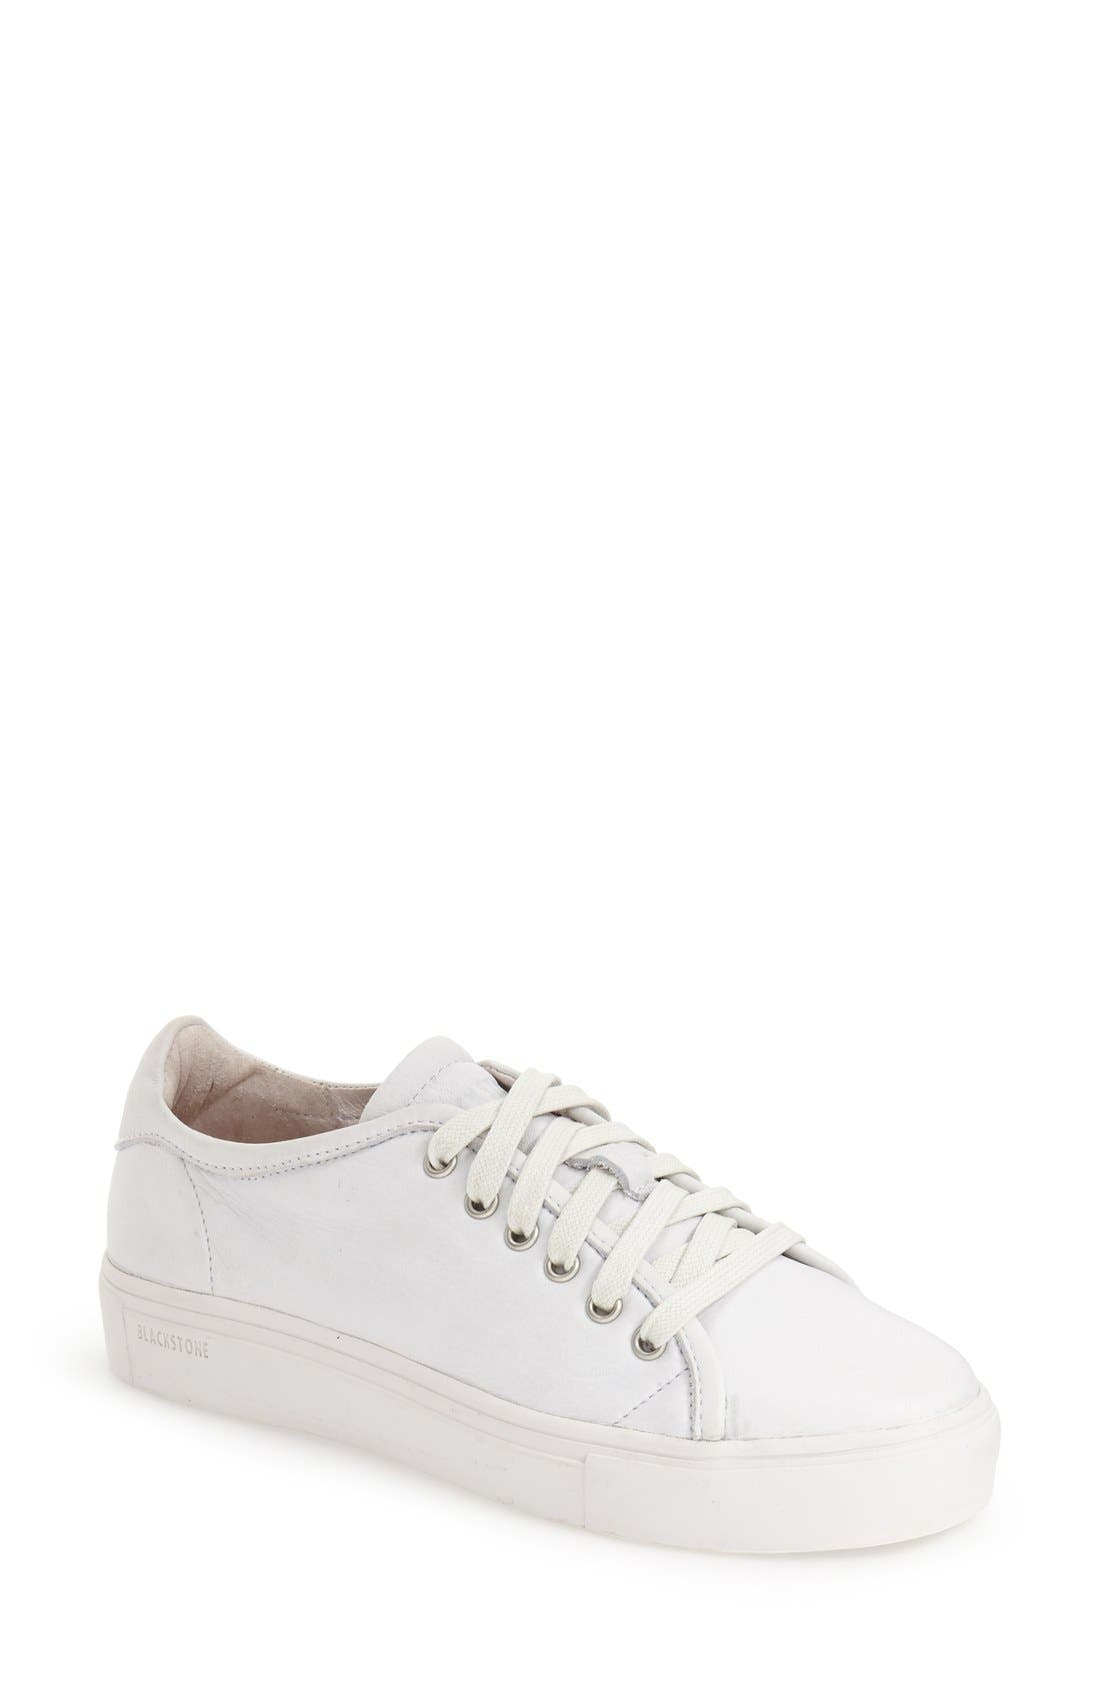 'LL64' Sneaker,                             Main thumbnail 1, color,                             White Leather